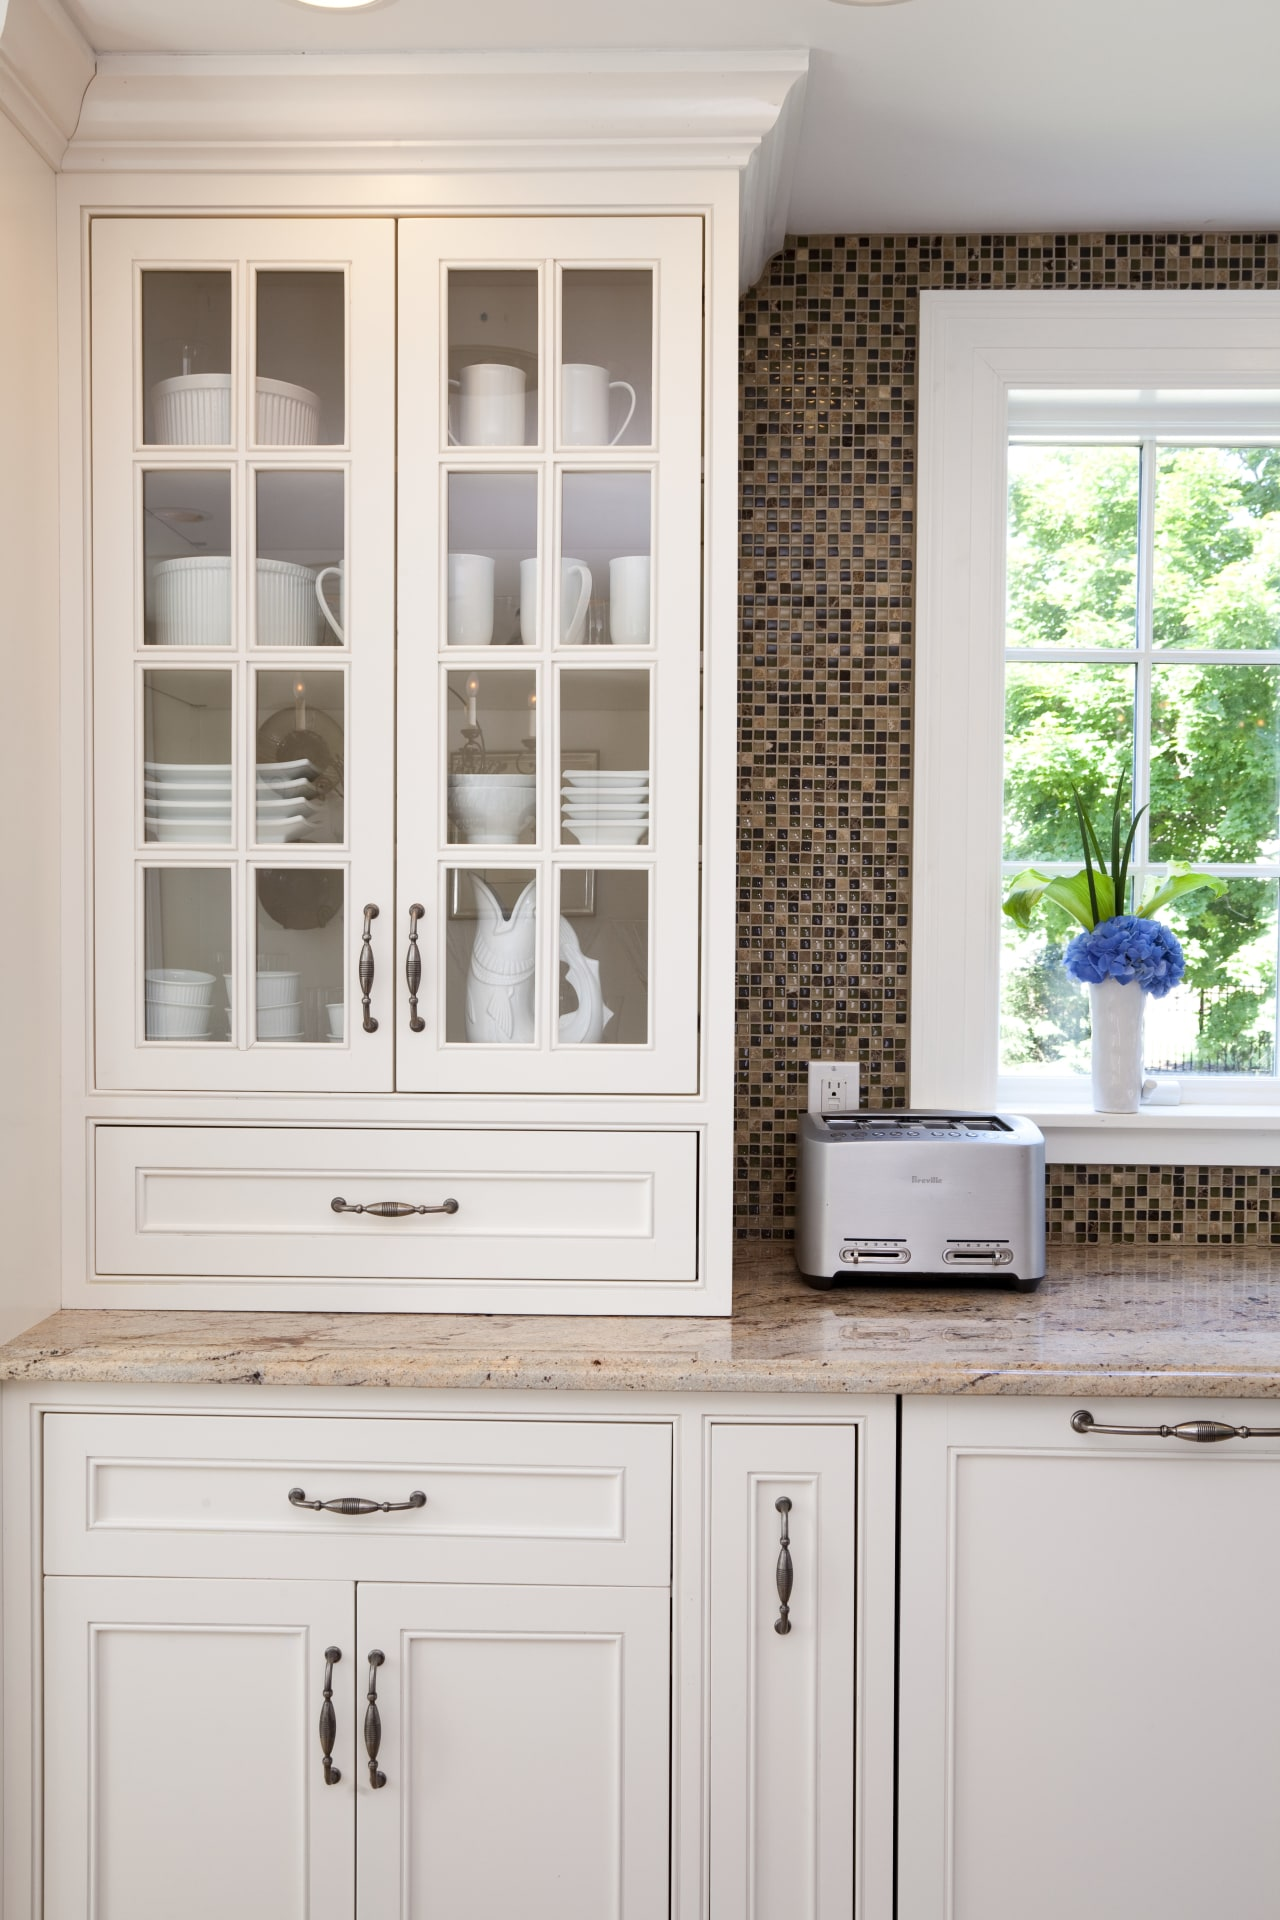 Country style family kitchen cabinetry, countertop, cuisine classique, cupboard, furniture, home, kitchen, shelf, shelving, window, white